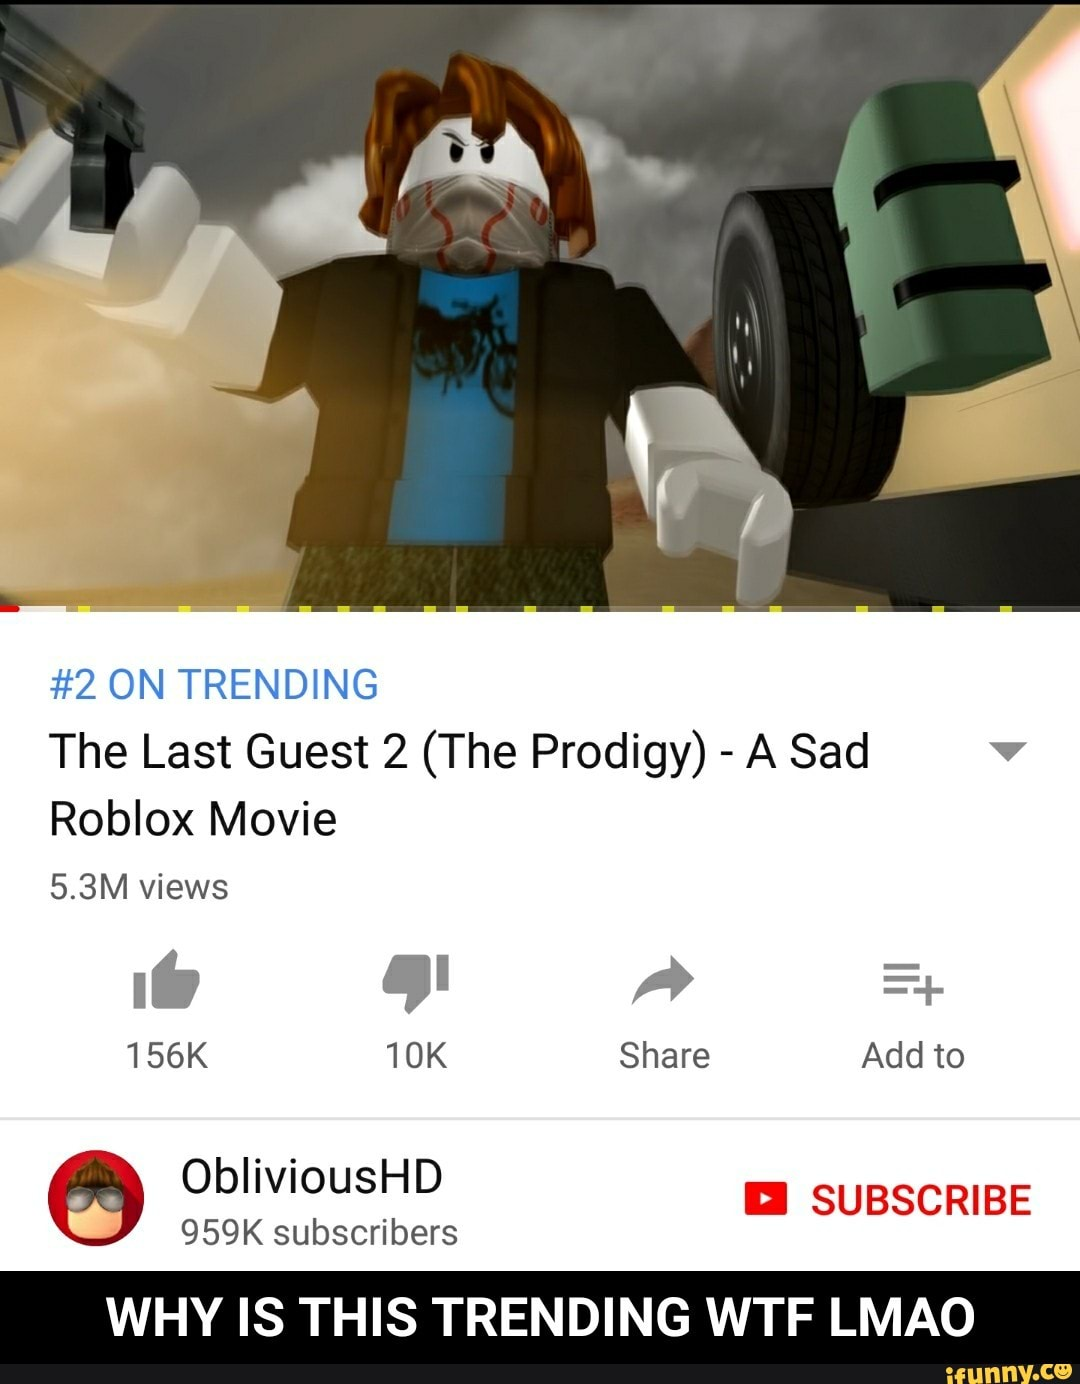 Is This Trending The Last Guest 2 The Prodigy Wtf A Sad Roblox